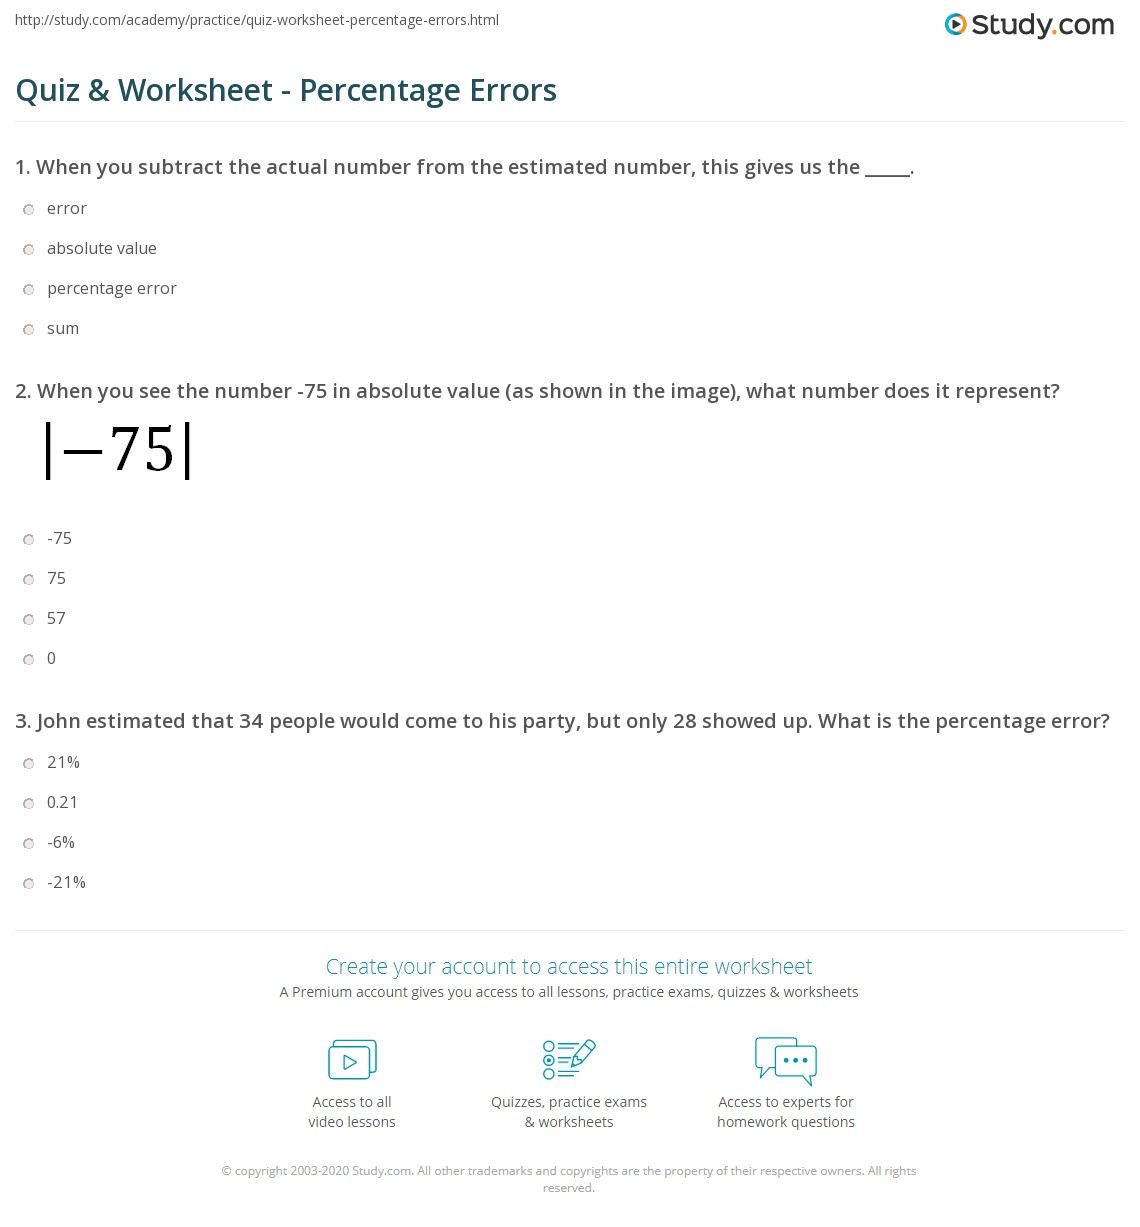 Quiz & Worksheet - Percentage Errors | Study.com